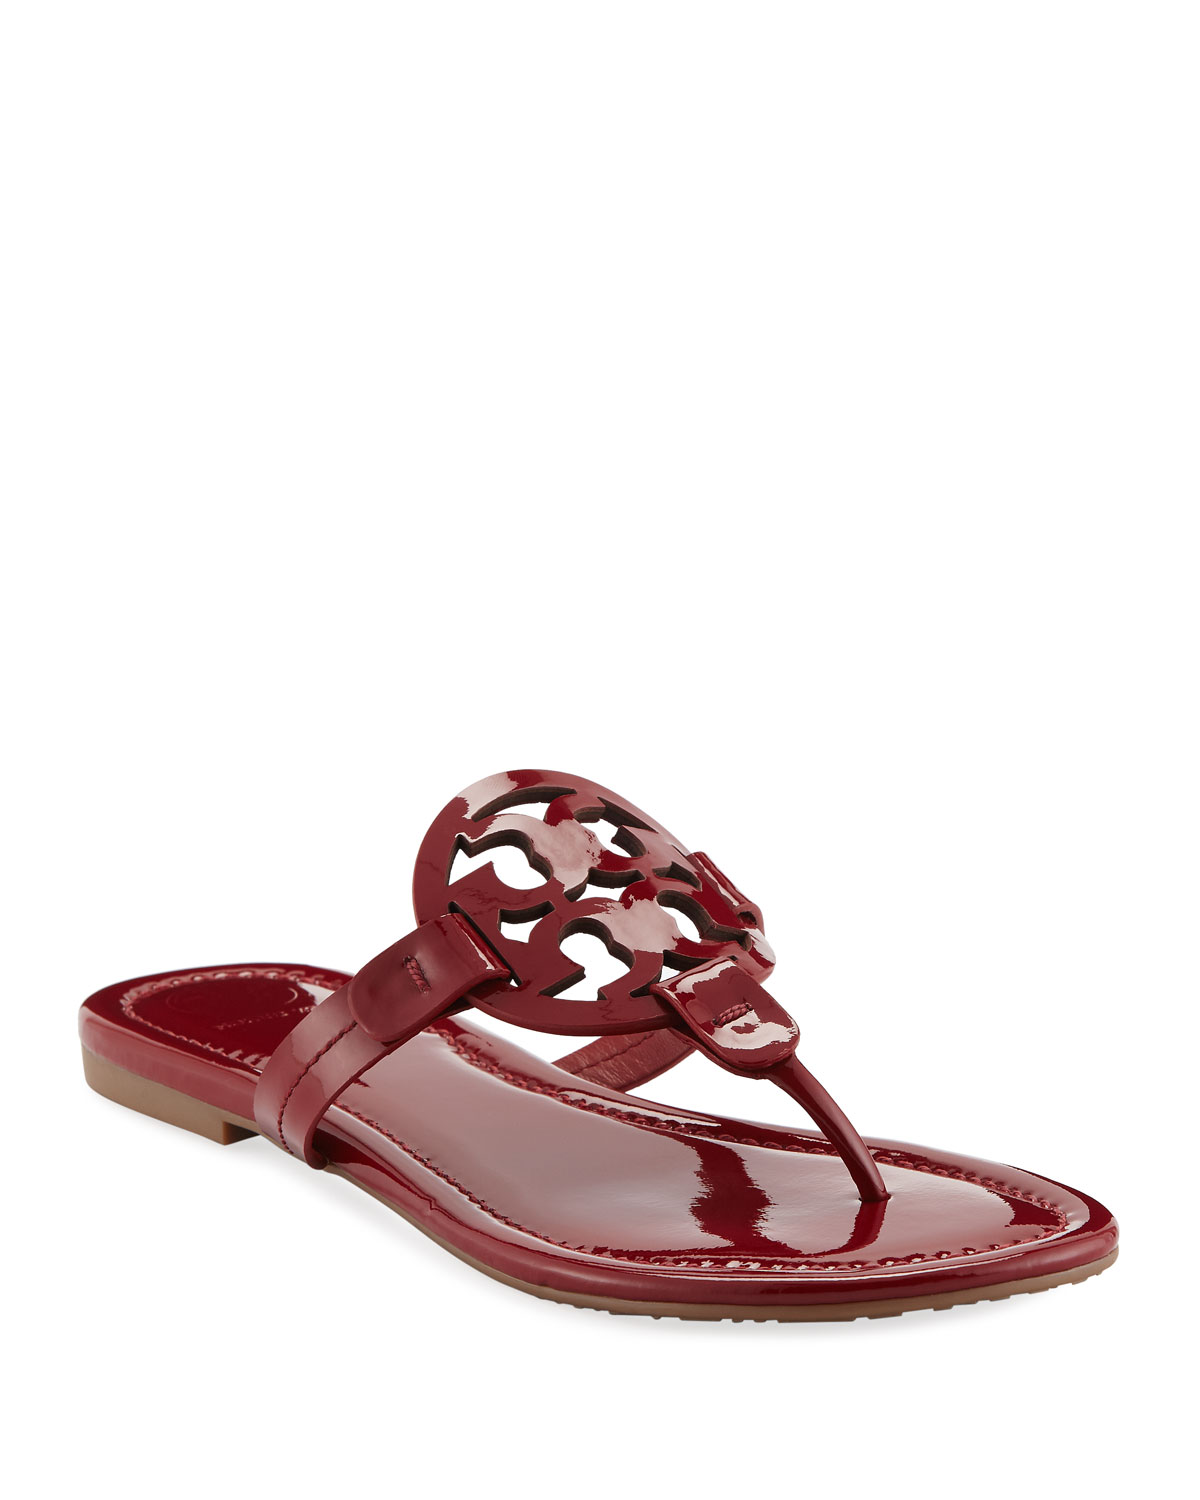 7befec522e67c Tory Burch Miller Medallion Patent Leather Flat Thong Sandals ...